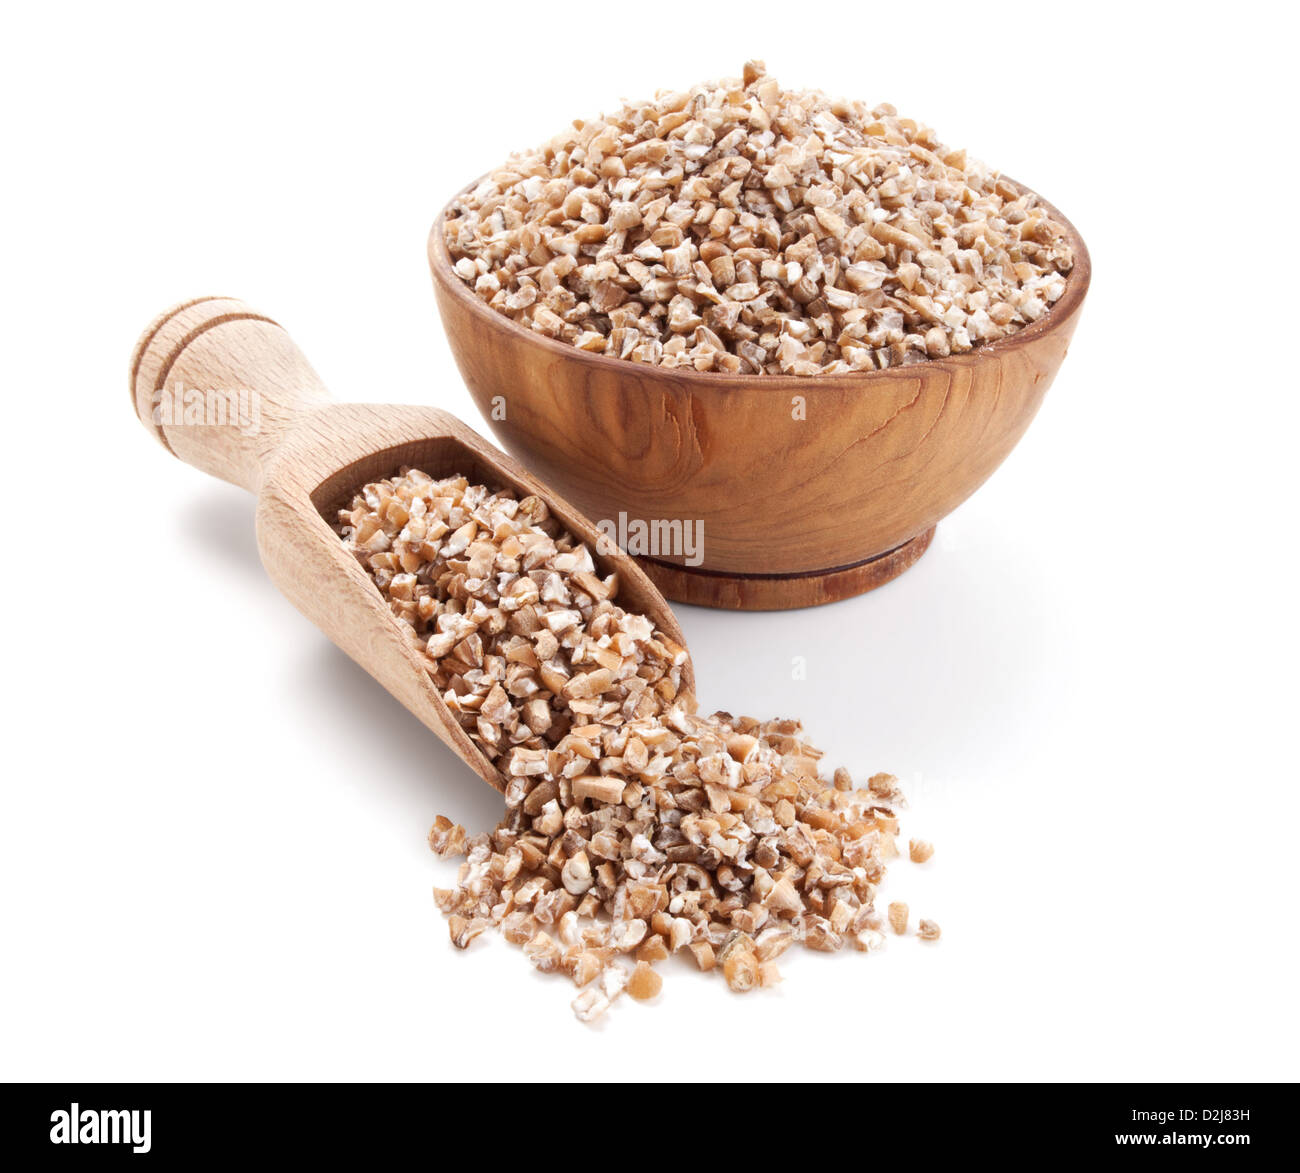 wheat groats in a wooden bowl isolated on white background - Stock Image